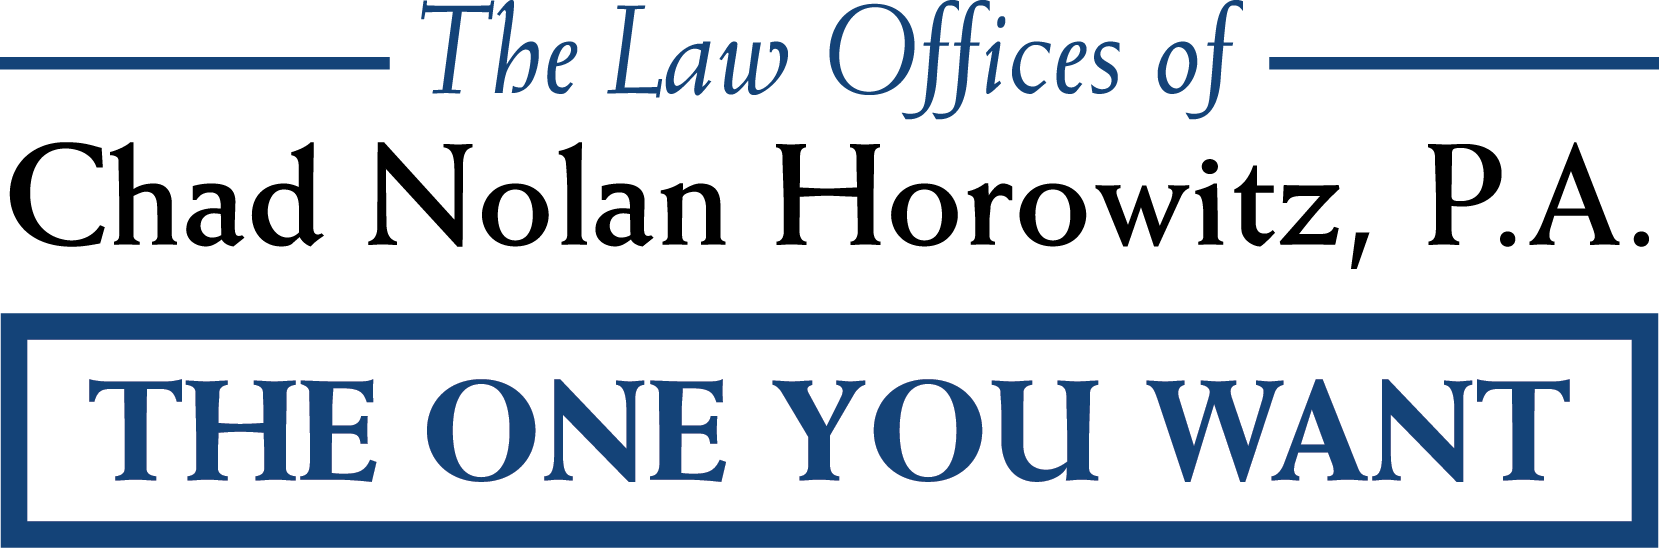 The Law Offices of Chad Nolan Horowitz Now Offers Assistance with Slip and Fall Cases